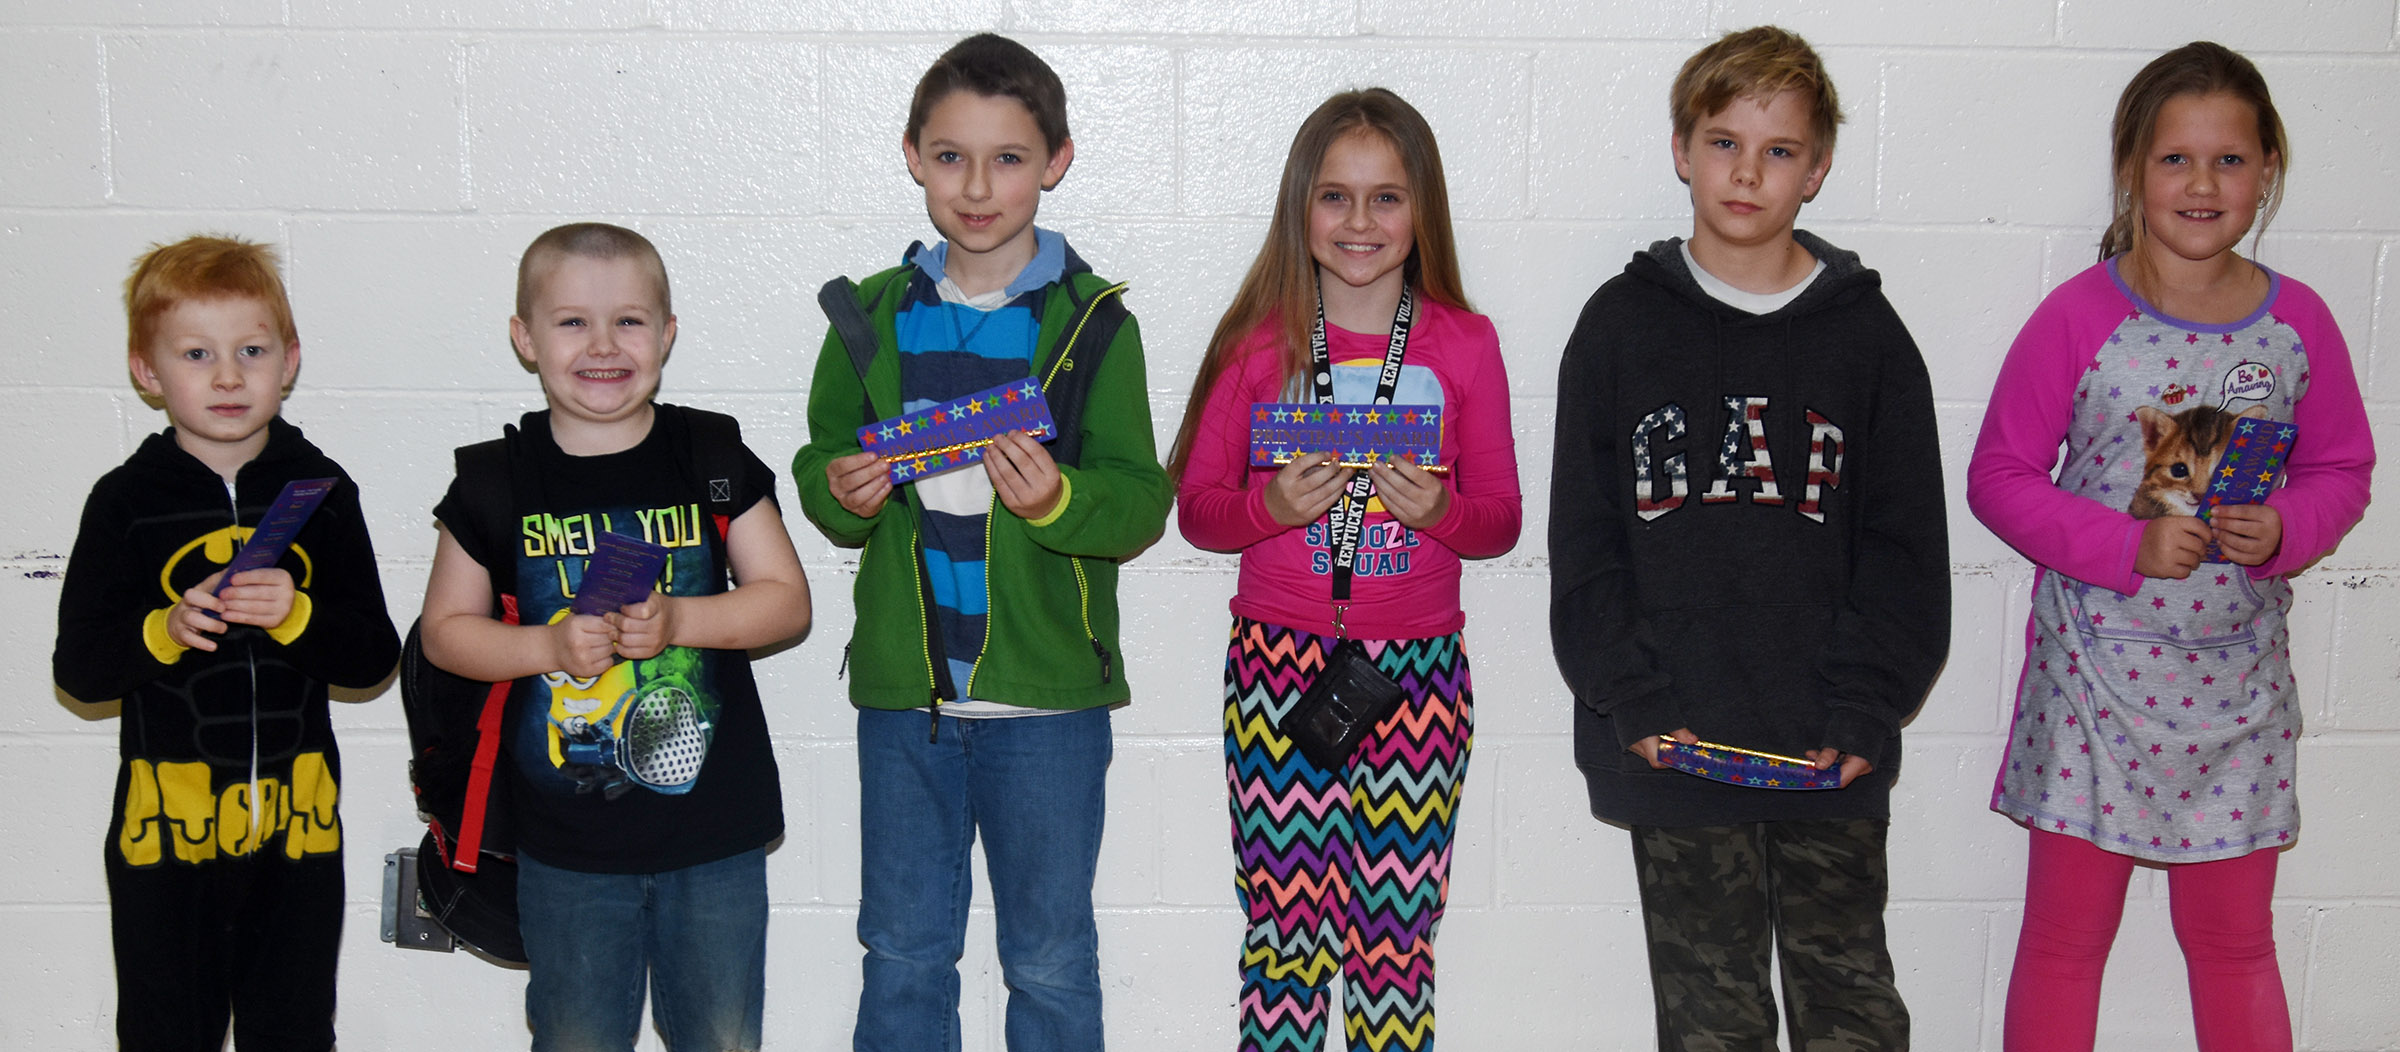 From left are first-grader Jayden Maupin, kindergartener Levi Dye, second-grader Aiden Forrest, fourth-grader Kennedy Griffiths, fifth-grader Thomas Tungate and third-grader Madison Smith.